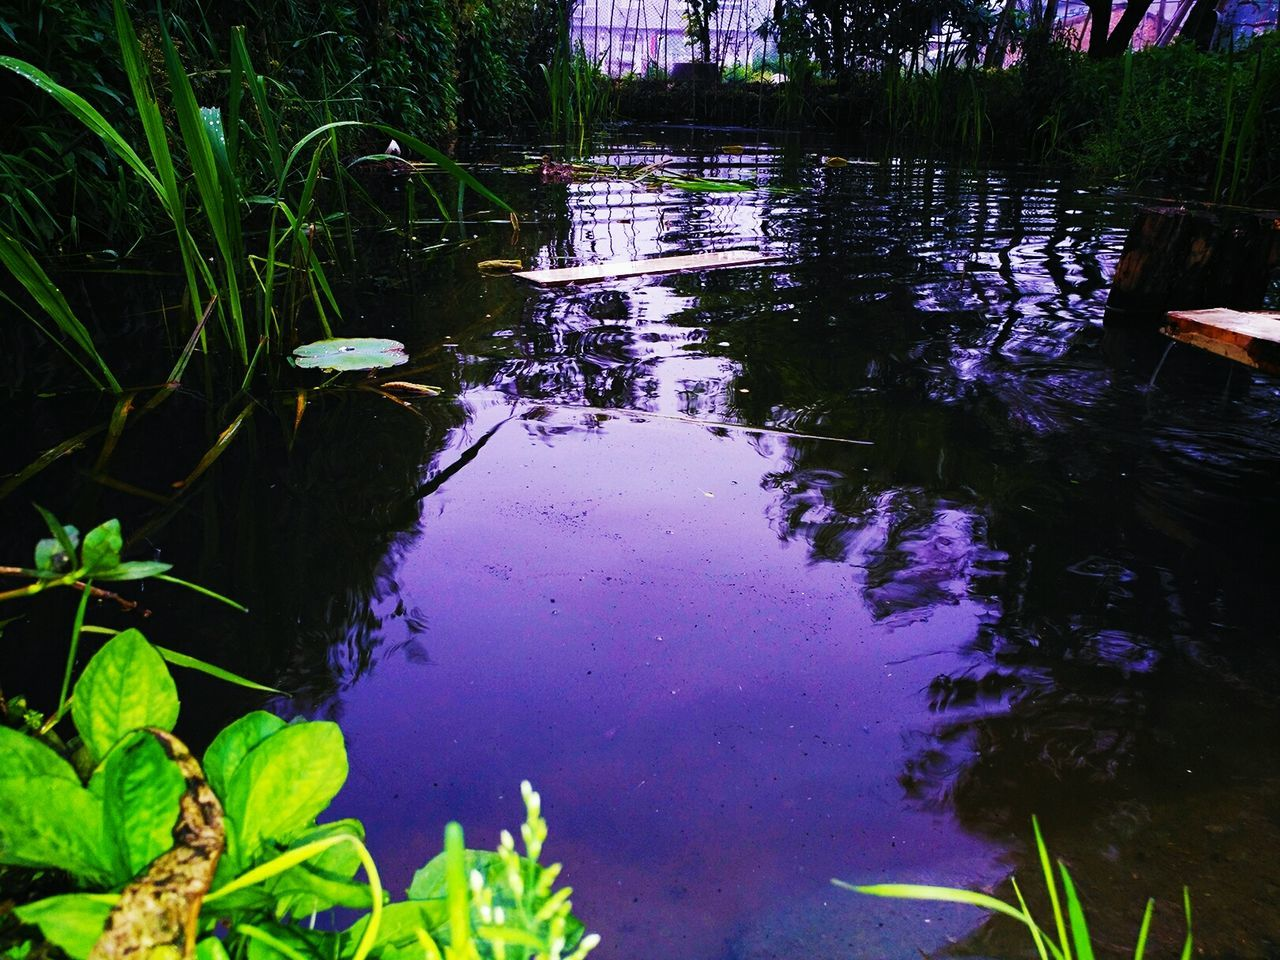 water, reflection, nature, growth, plant, outdoors, lake, floating on water, tranquility, animal themes, day, beauty in nature, water plant, no people, animals in the wild, leaf, water lily, grass, lily pad, tree, swimming